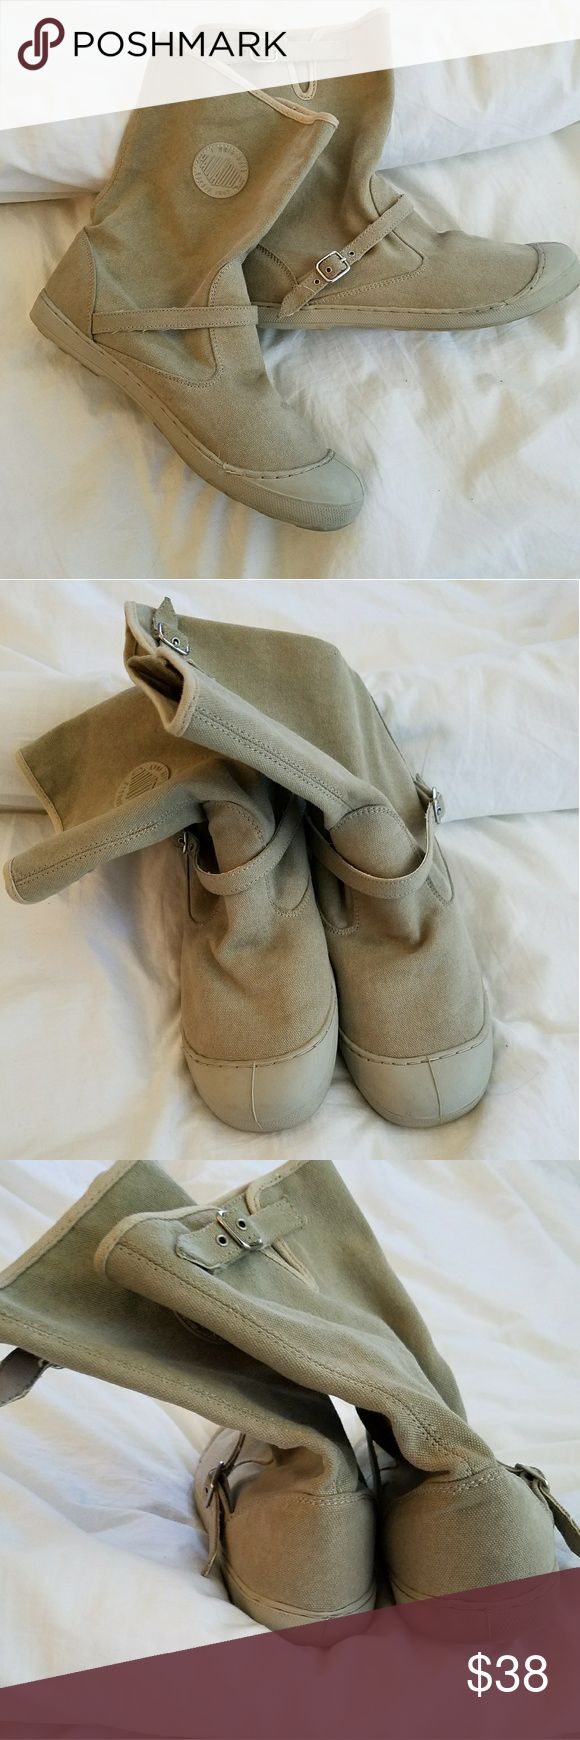 Palladium Canvas Boots Adorable khaki pull on boots. Lightweight, cute buckles, and in fabulous condition!! Palladium Shoes Winter & Rain Boots